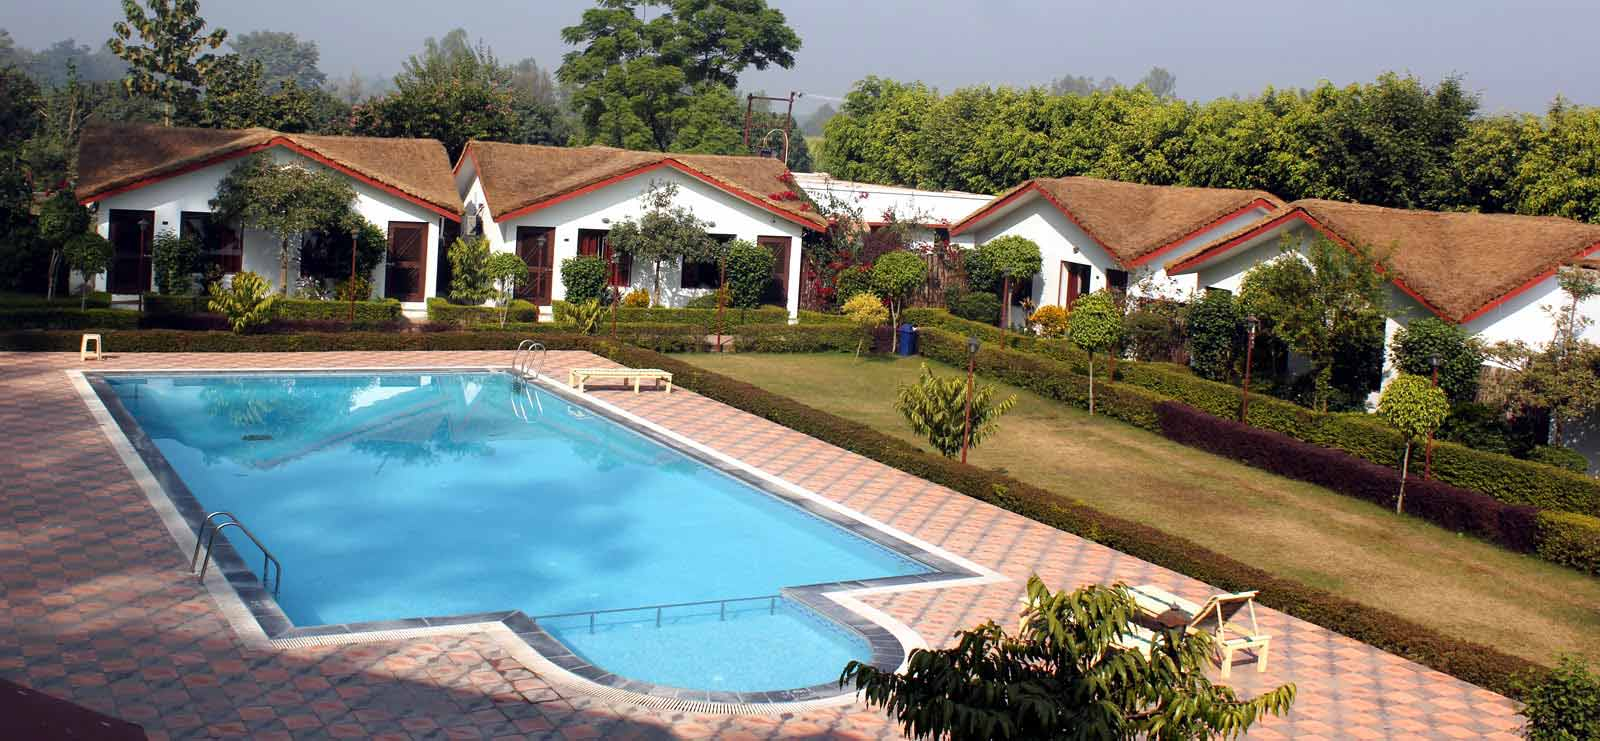 Holiday Forest resort in corbett